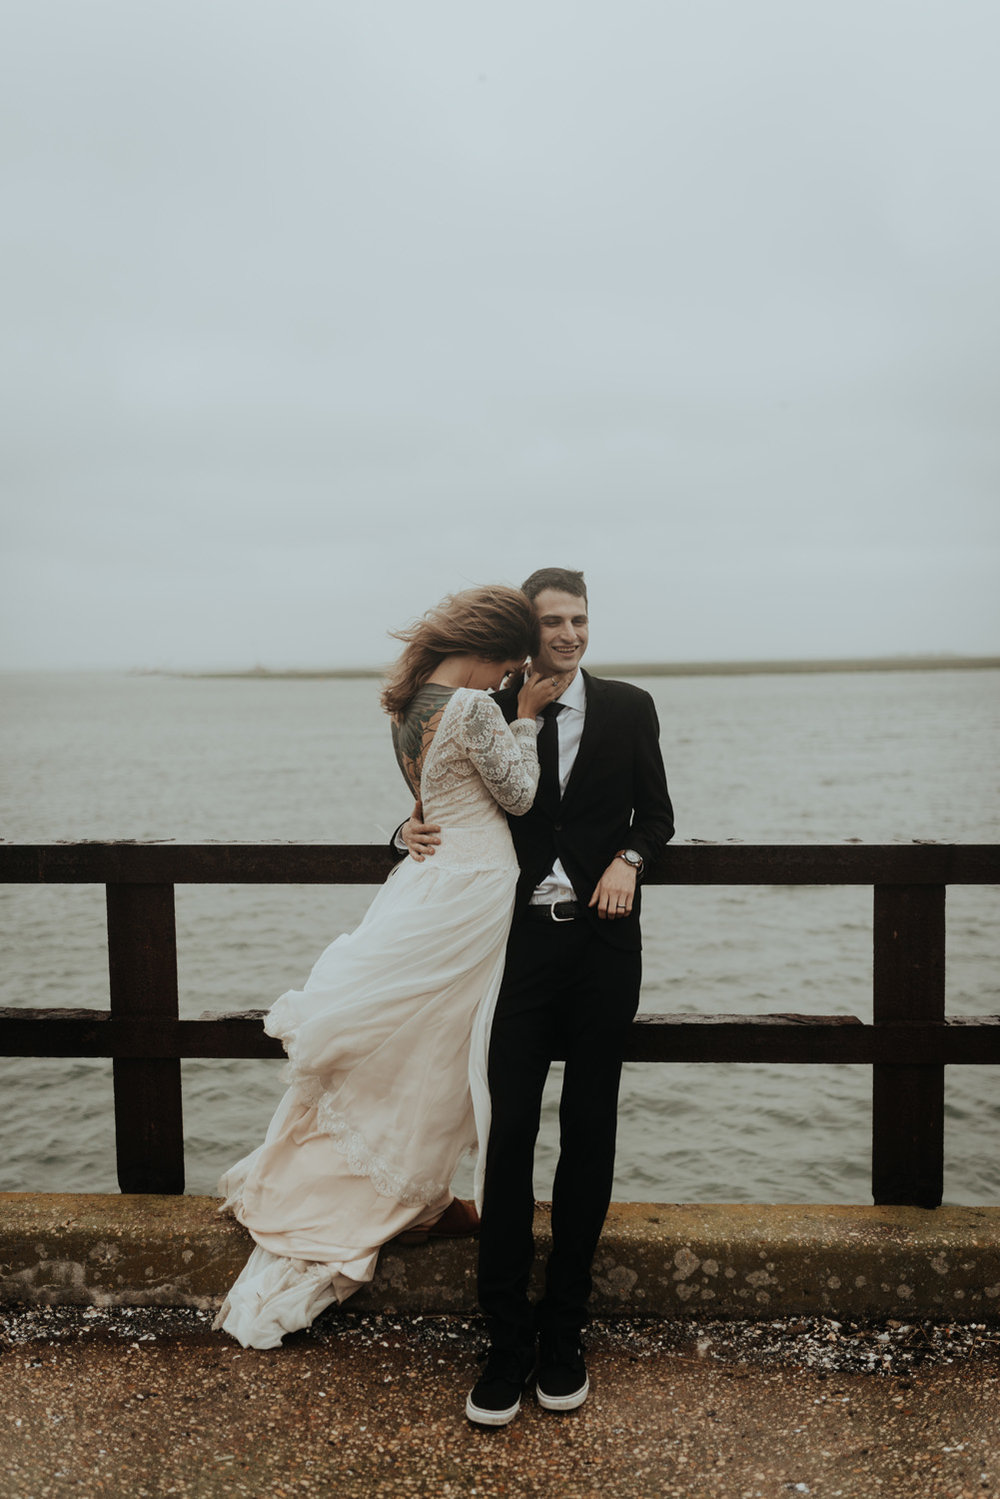 kylewillisphoto_kyle_Willis_Photography_liz_gibbs_brigantine_beach_atlantic_city_wedding_philadelphia_jersey_shore_new_nyc_engagement_delaware_engaged_married_rainy_photos_ac_boho45.jpg